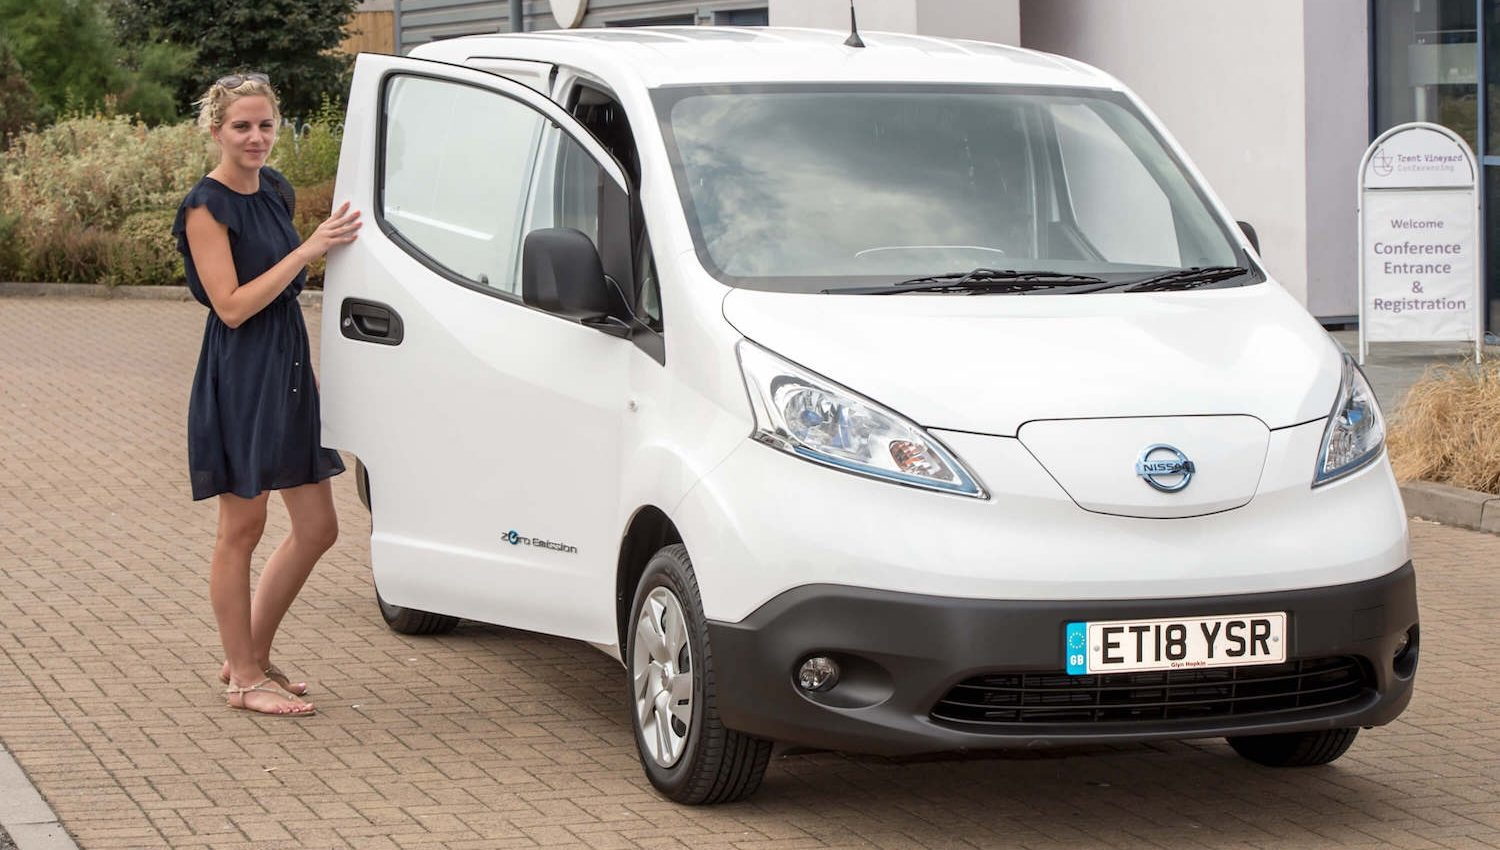 ULEV Experience Ride & Drive event